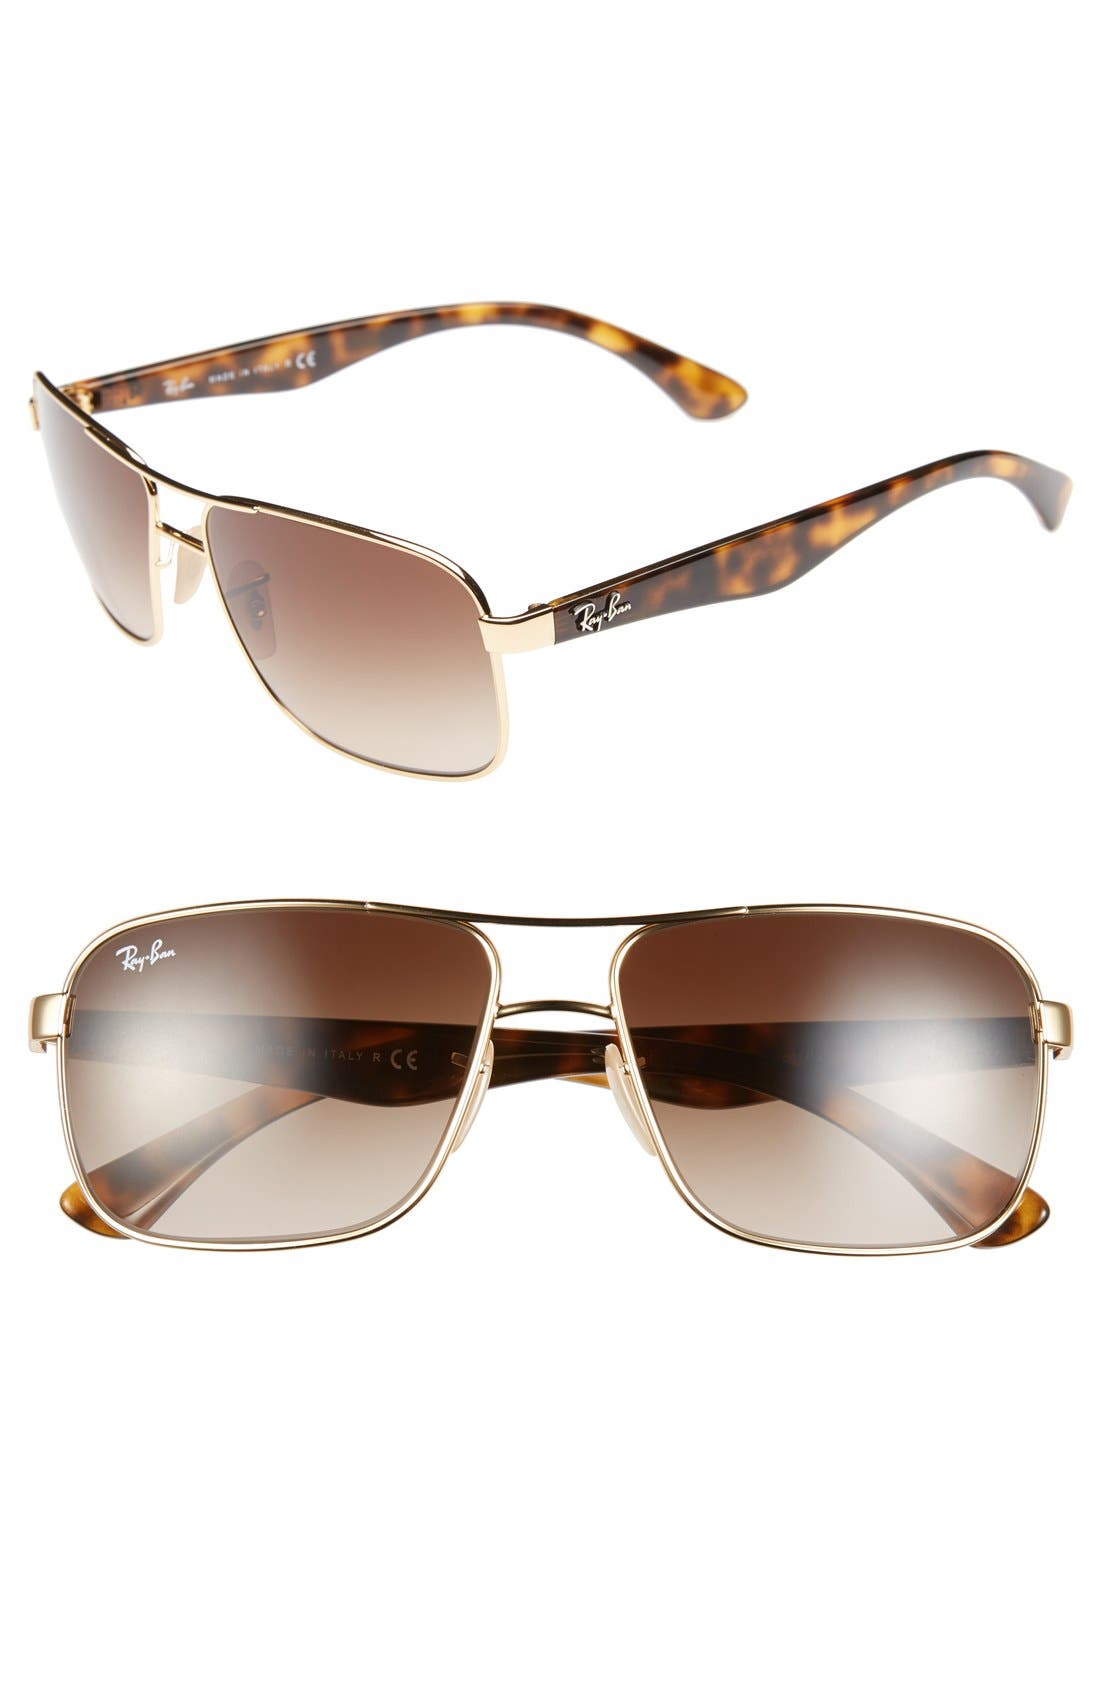 Ray-Ban 5m Pilot Sunglasses - Gold/ Brown